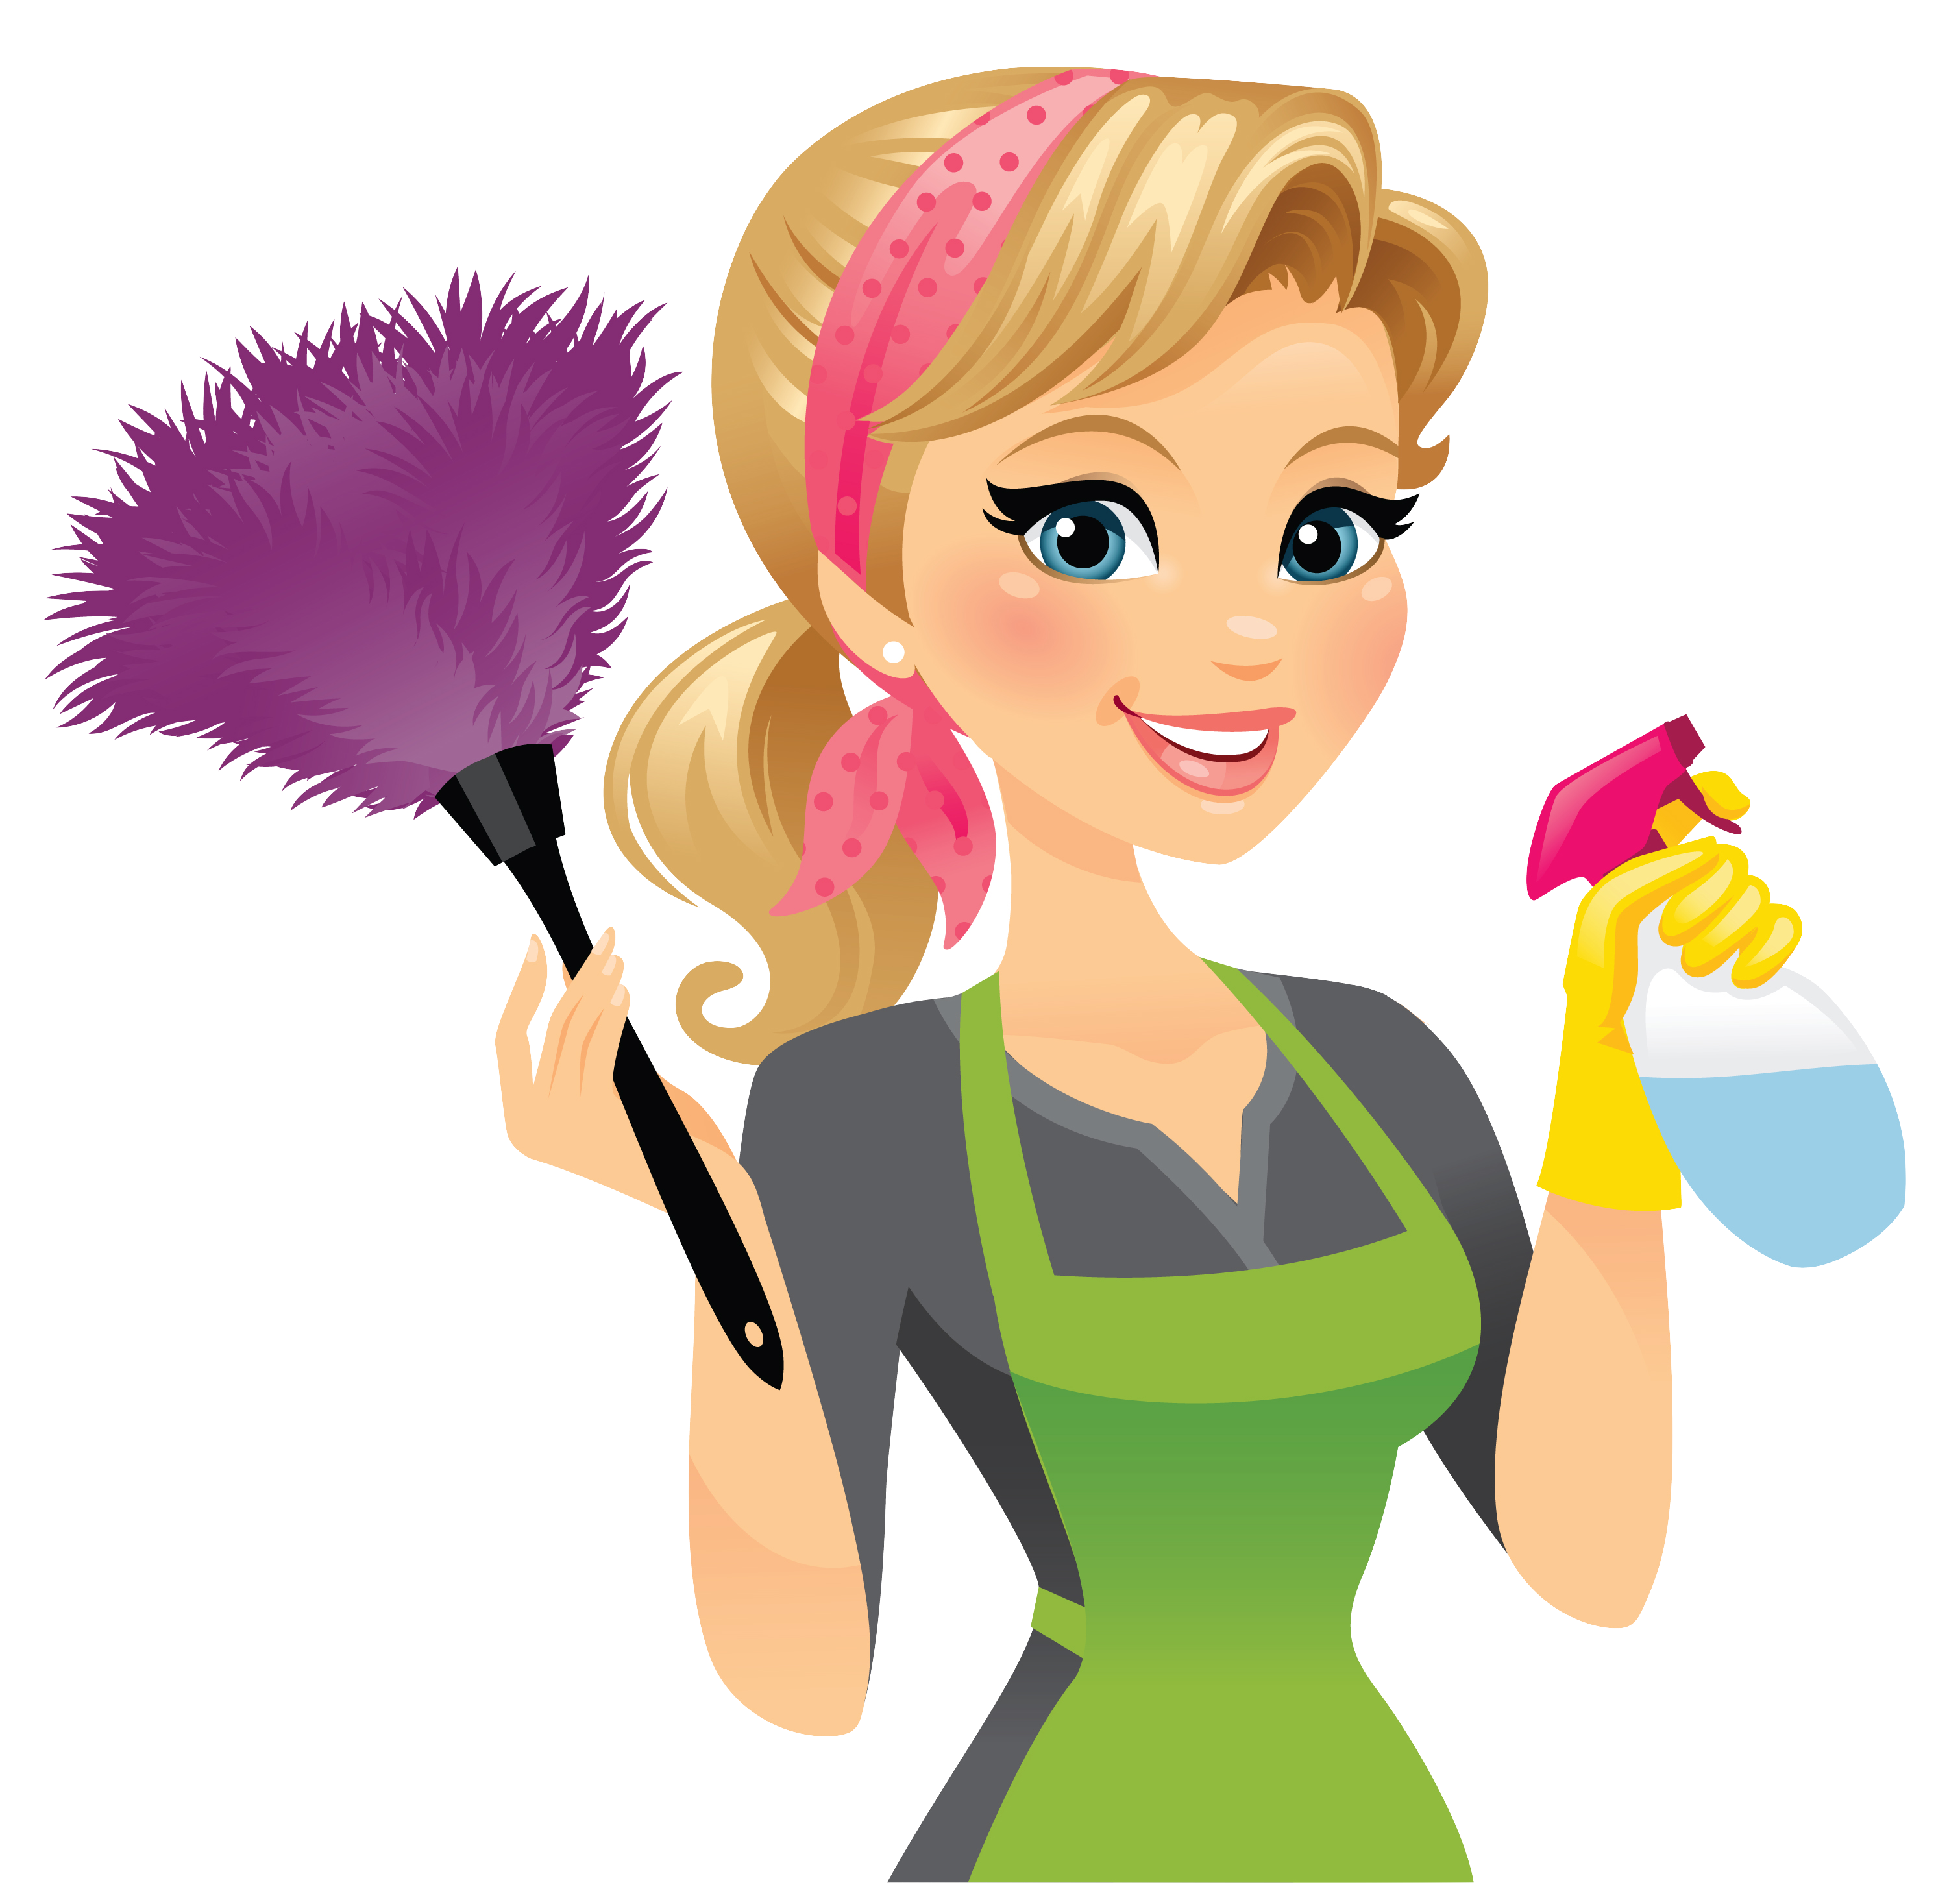 clipart stock Cleaner clipart housekeeper. Maid service cleaning clip.